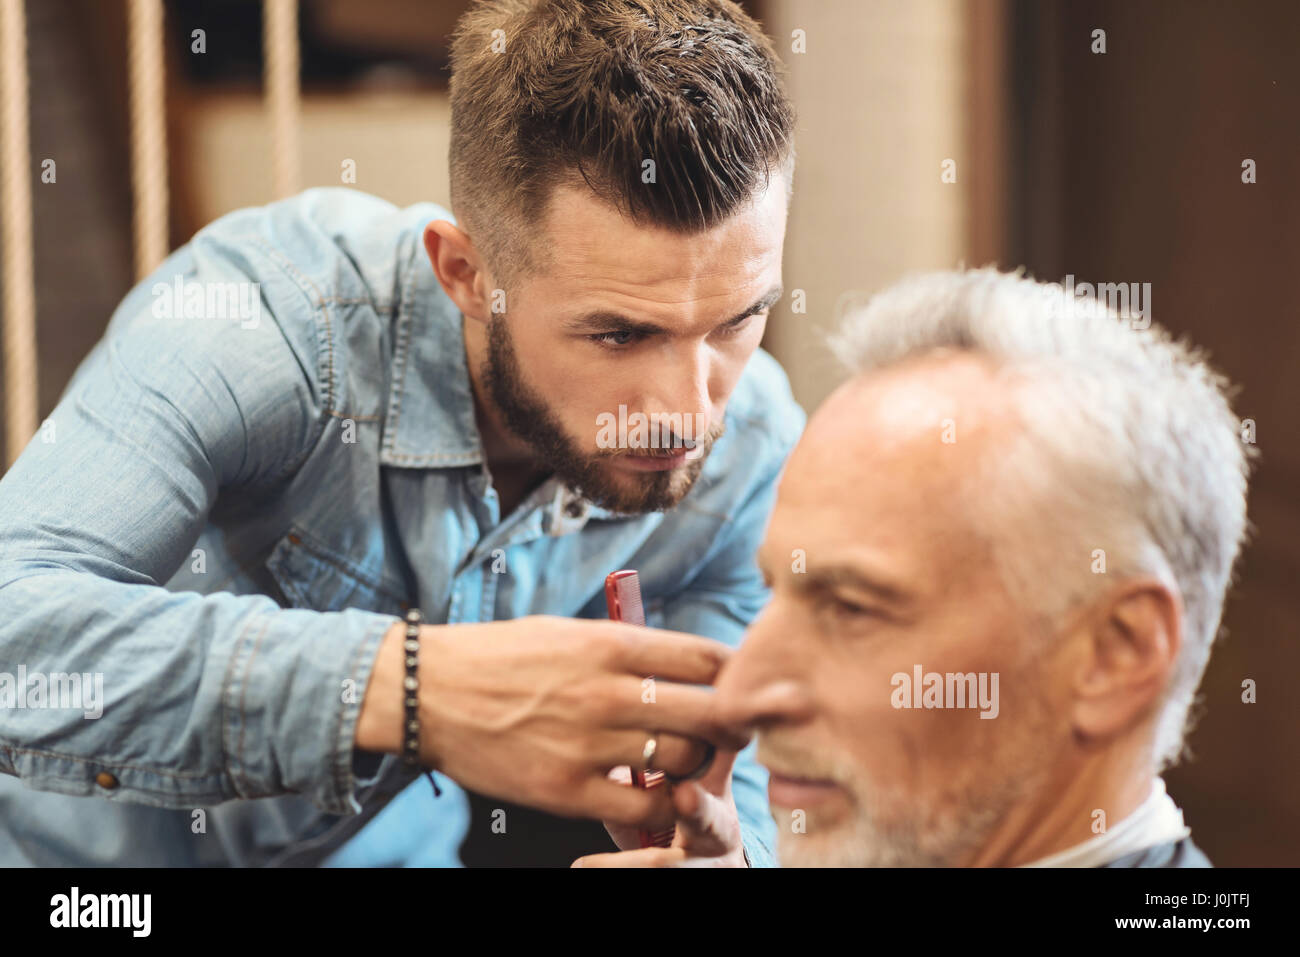 Proficient hairdresser designing haircut in the barbershop - Stock Image